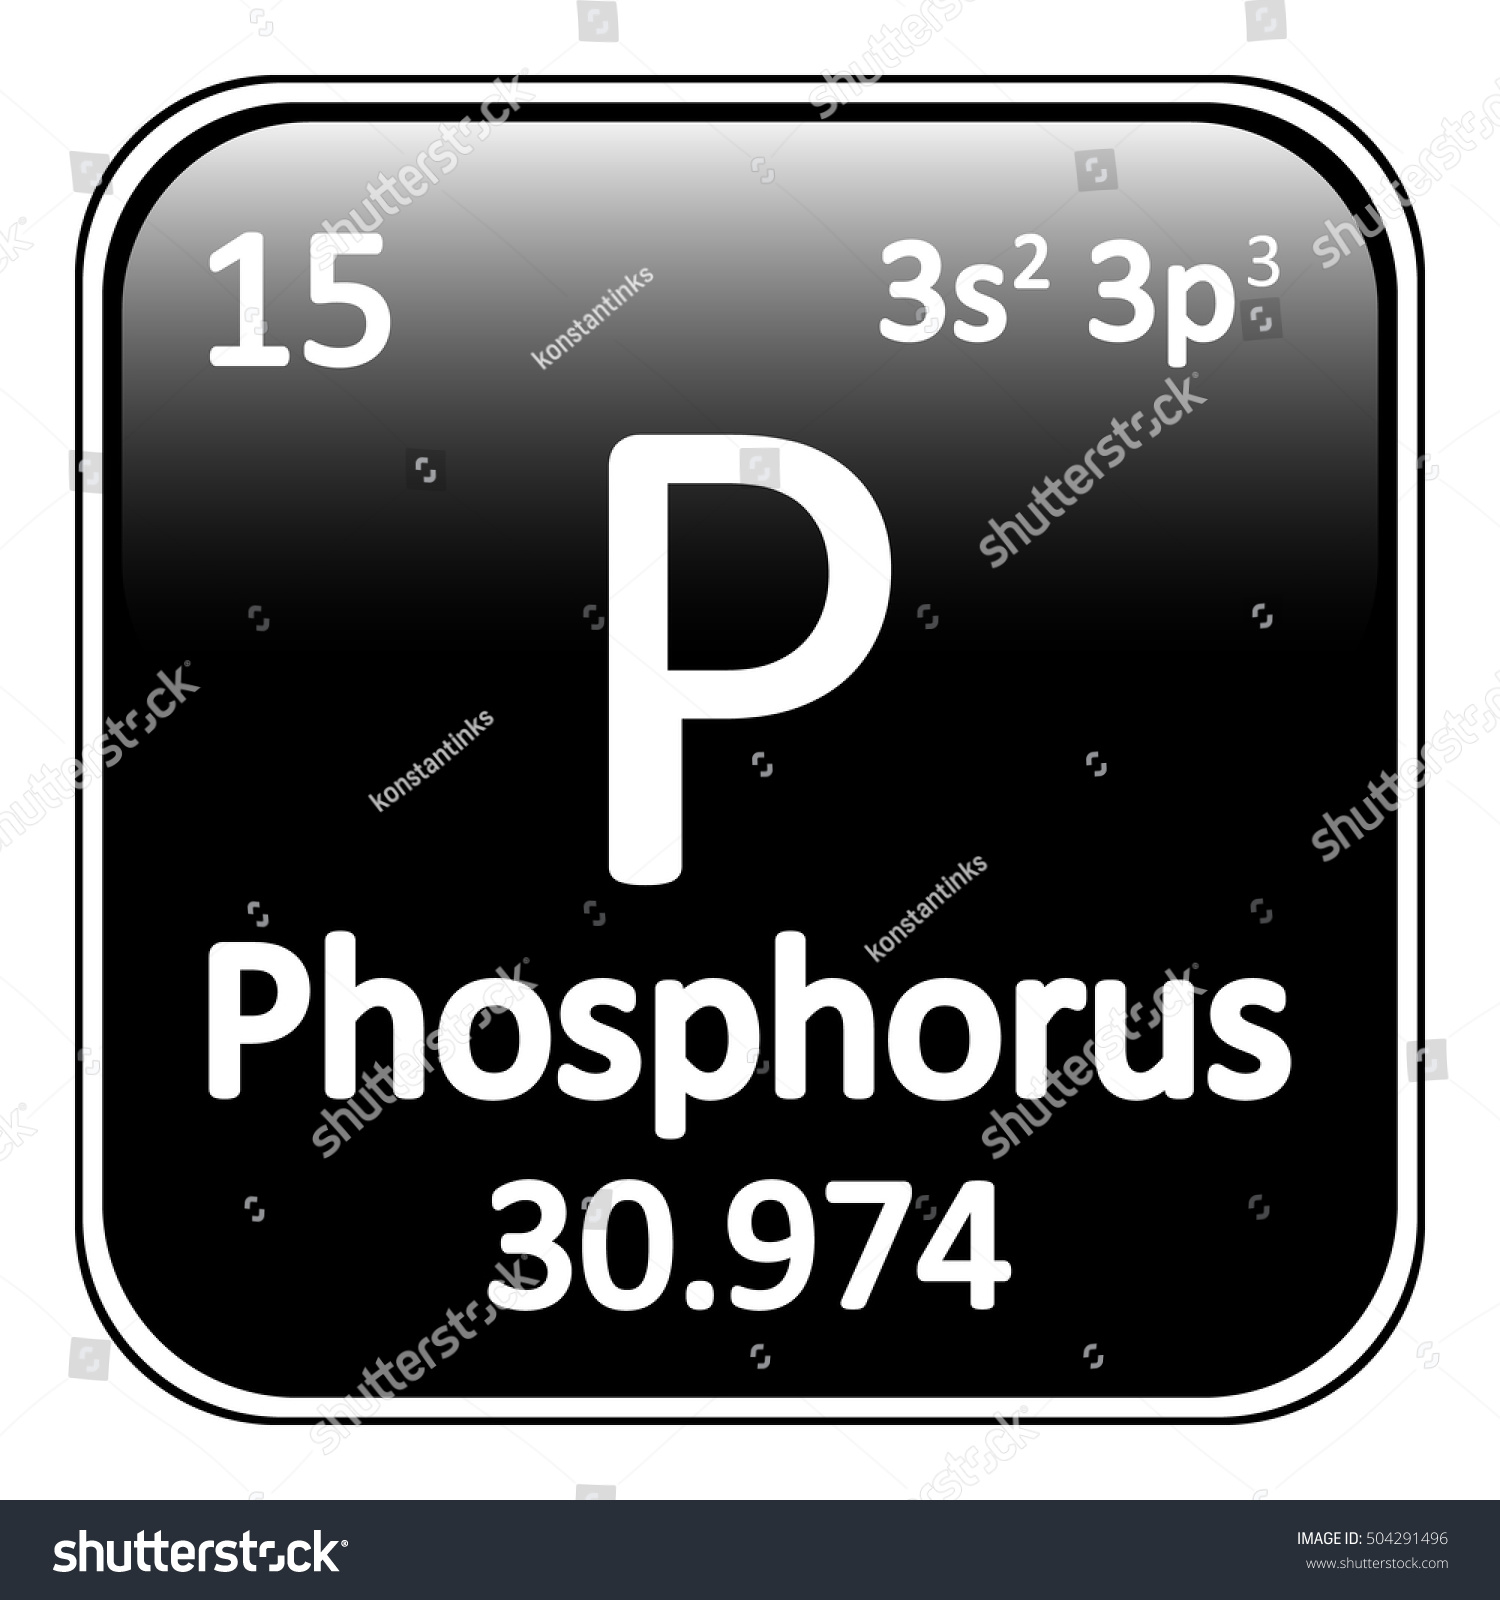 Phosphorus on periodic table image collections periodic table images what is the symbol for phosphorus on the periodic table choice what is the symbol for gamestrikefo Gallery